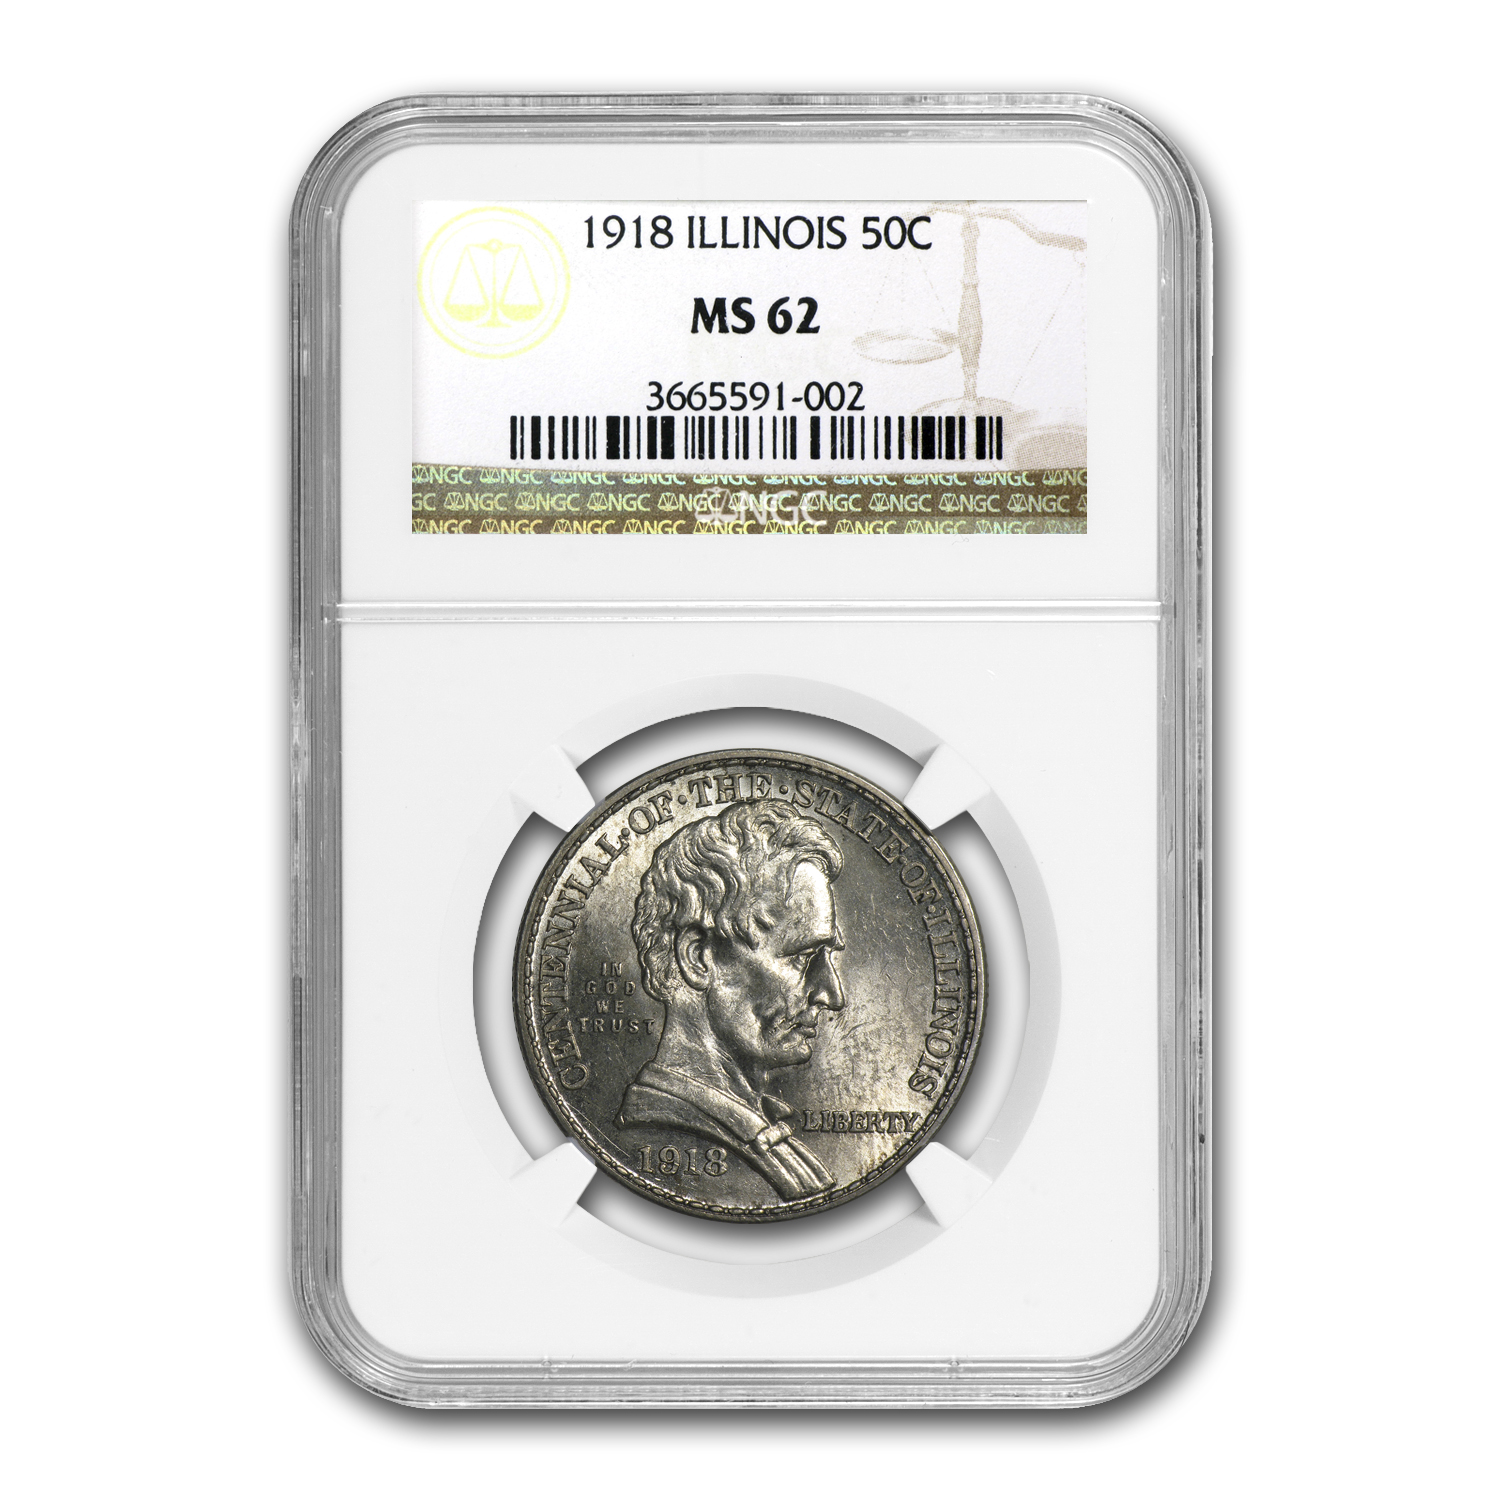 1918 Lincoln Illinois Centennial Half Dollar MS-62 NGC